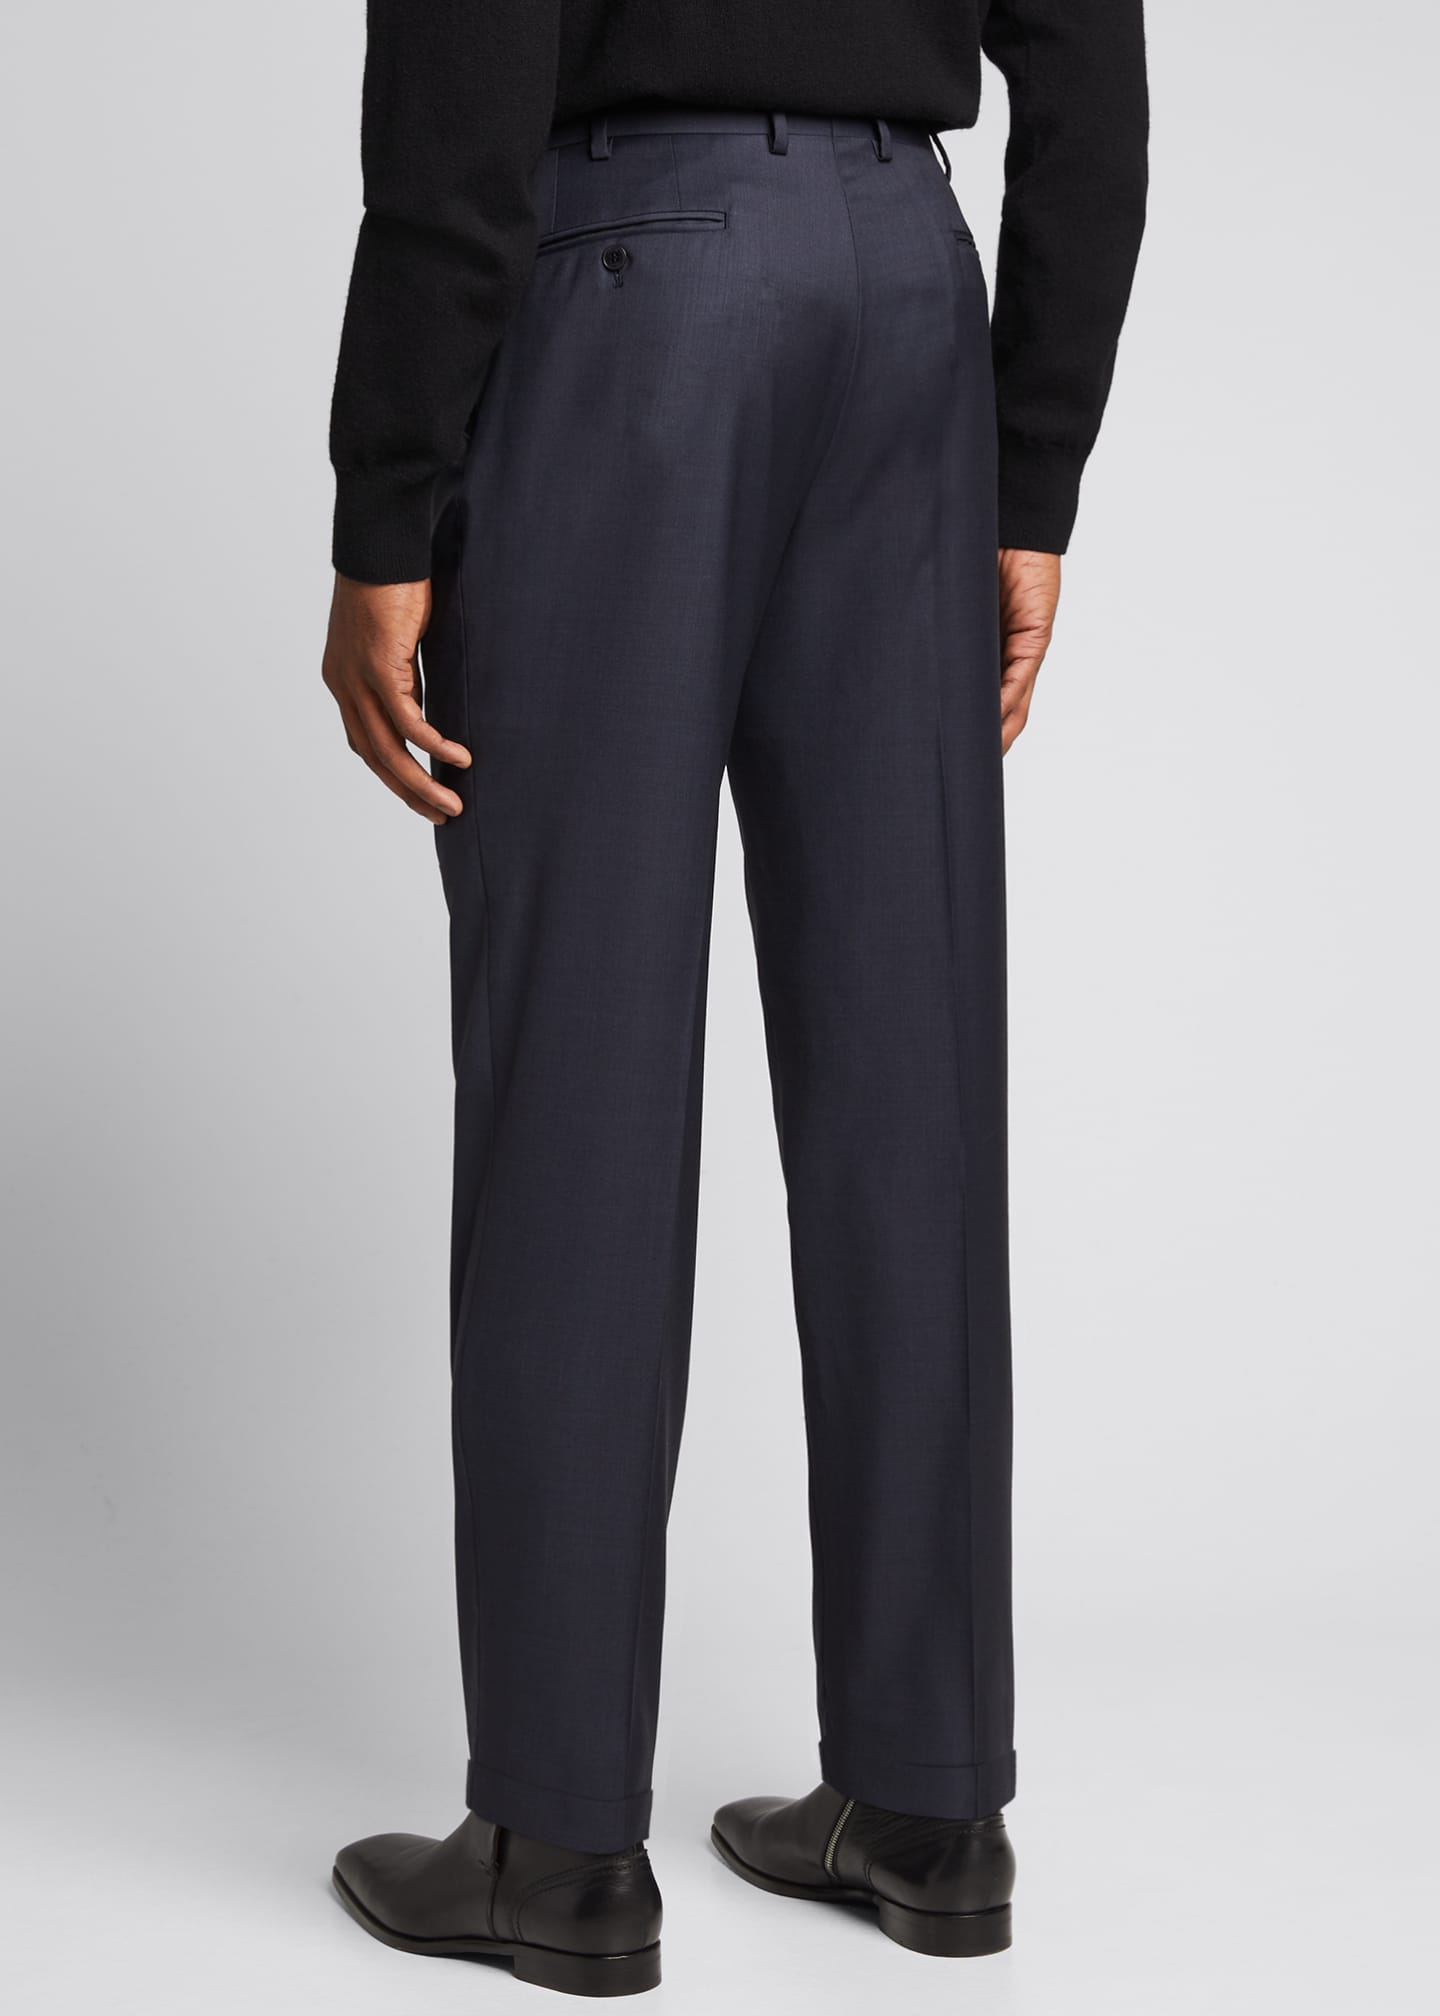 Image 2 of 5: Men's Tigulli Solid Wool Trousers